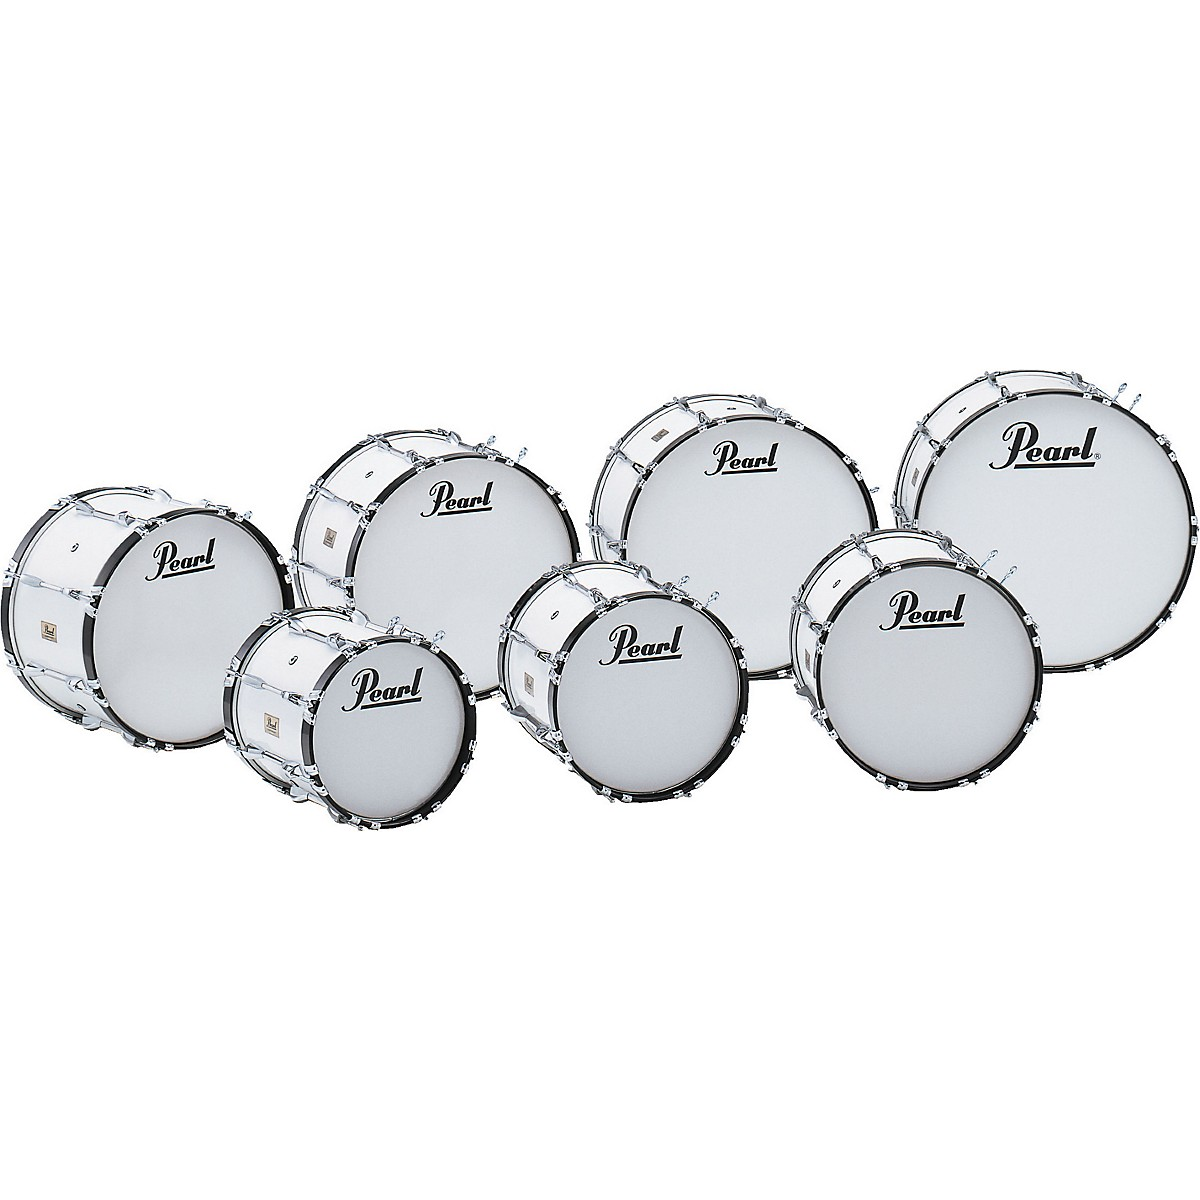 Pearl Competitor Marching Bass Drum